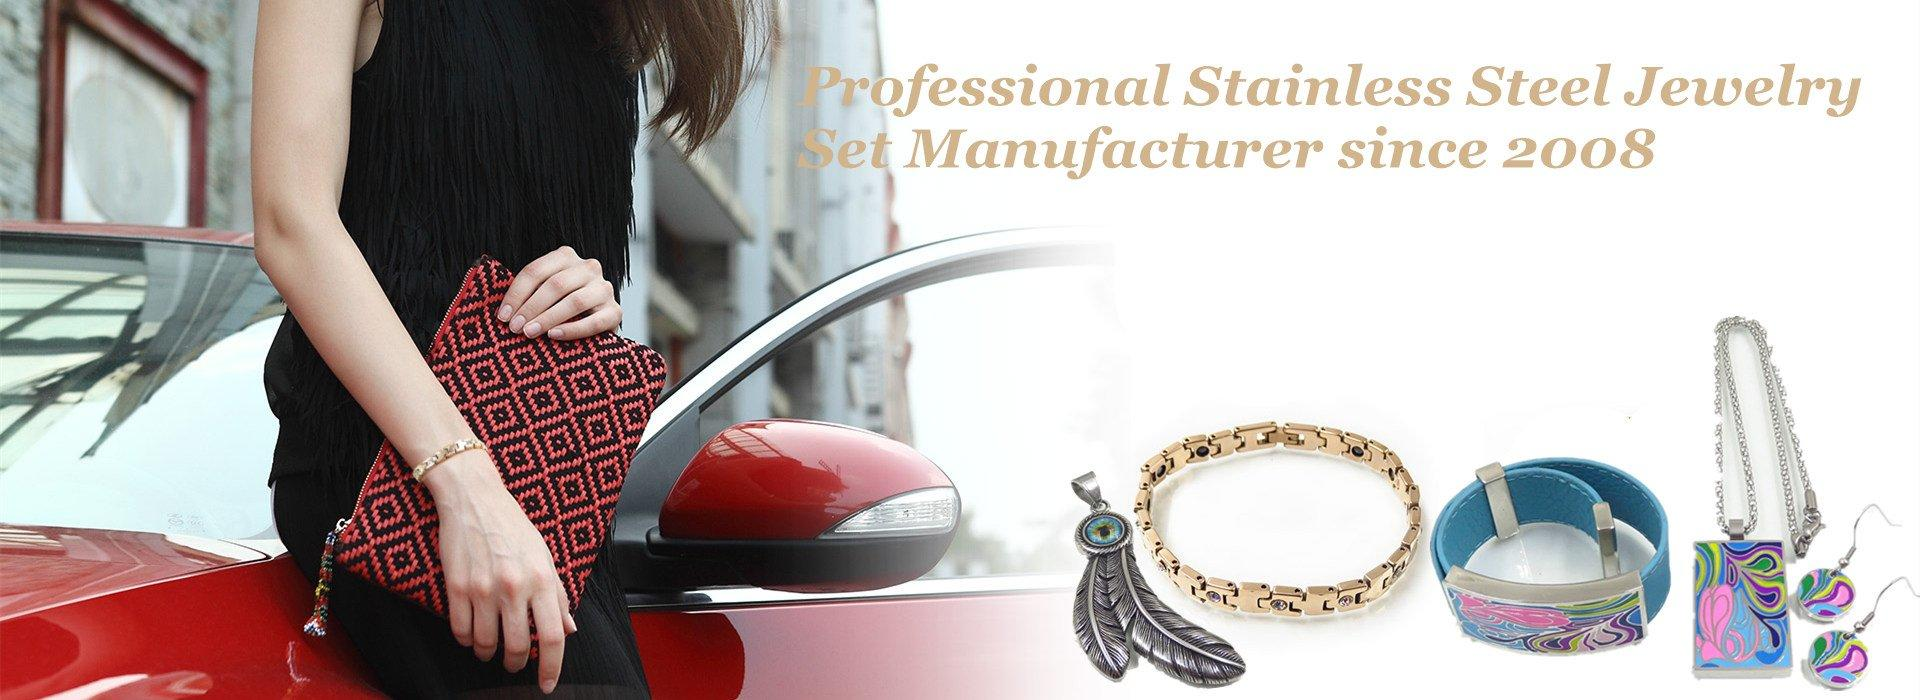 Stainless Steel Jewelry Set Manufacturer